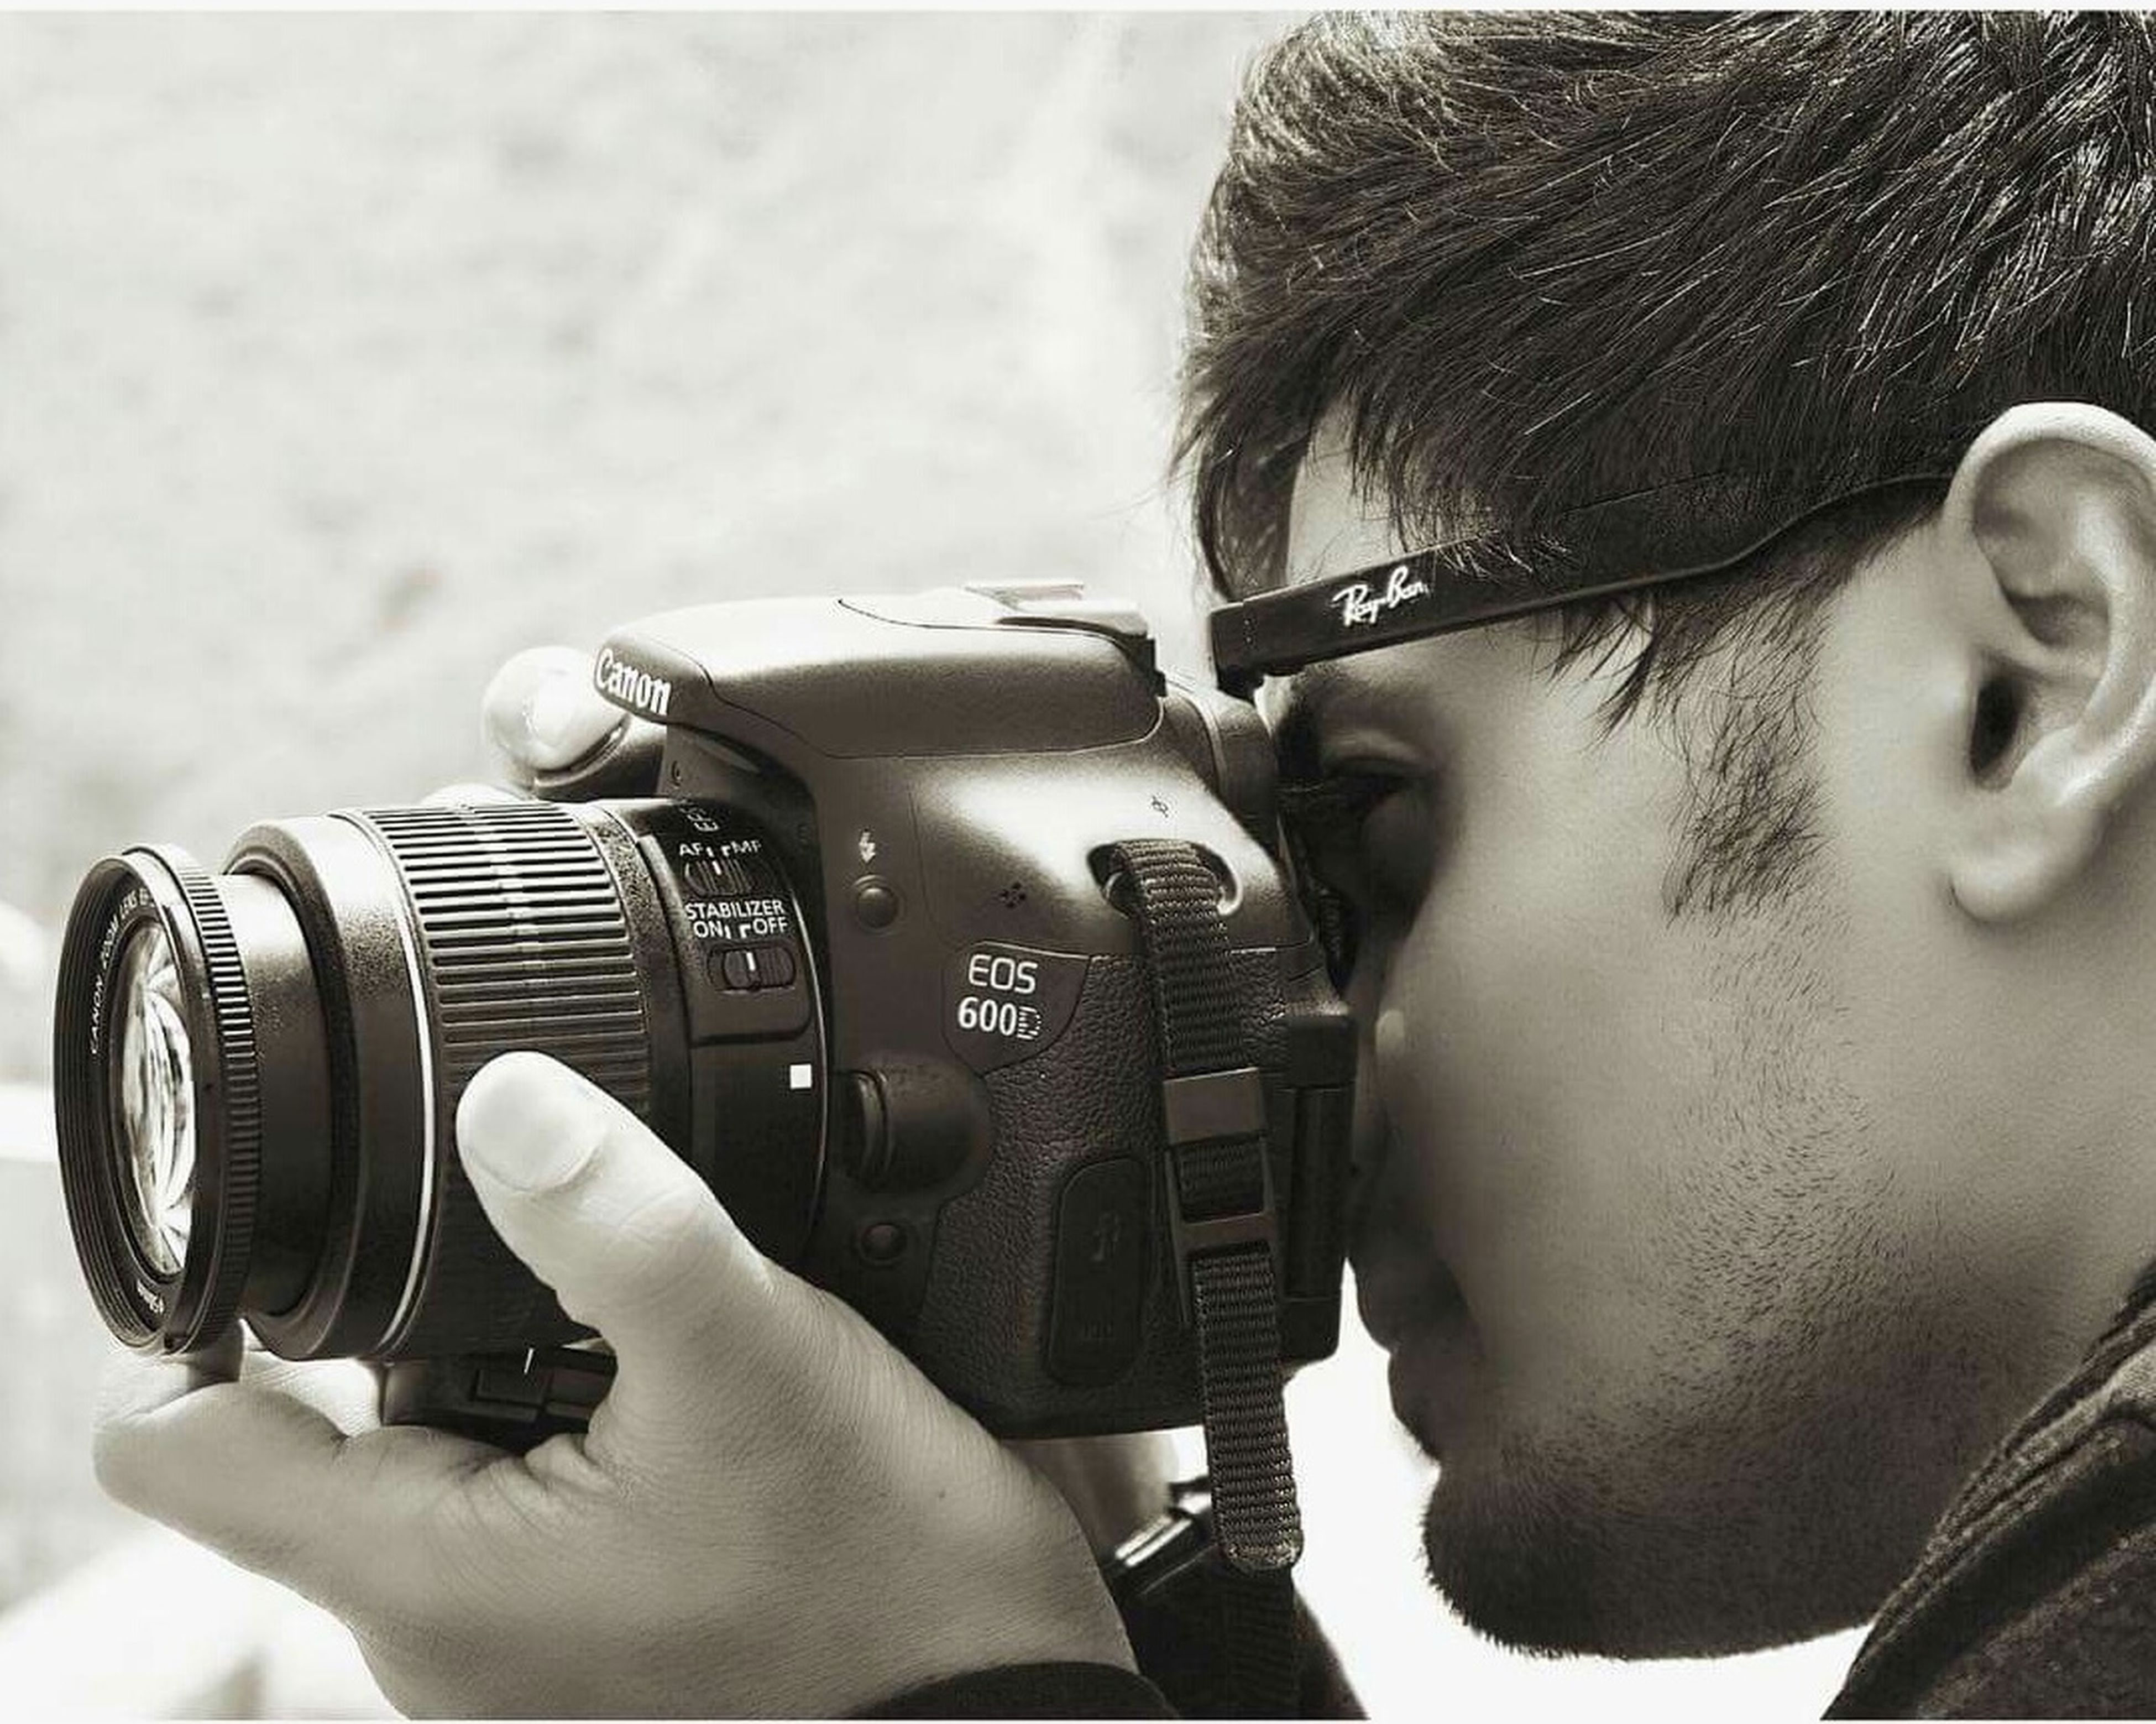 photography themes, real people, camera - photographic equipment, photographing, leisure activity, one person, photographer, technology, holding, lifestyles, retro styled, headshot, digital single-lens reflex camera, childhood, outdoors, day, slr camera, close-up, eyeglasses, young adult, movie camera, human hand, people